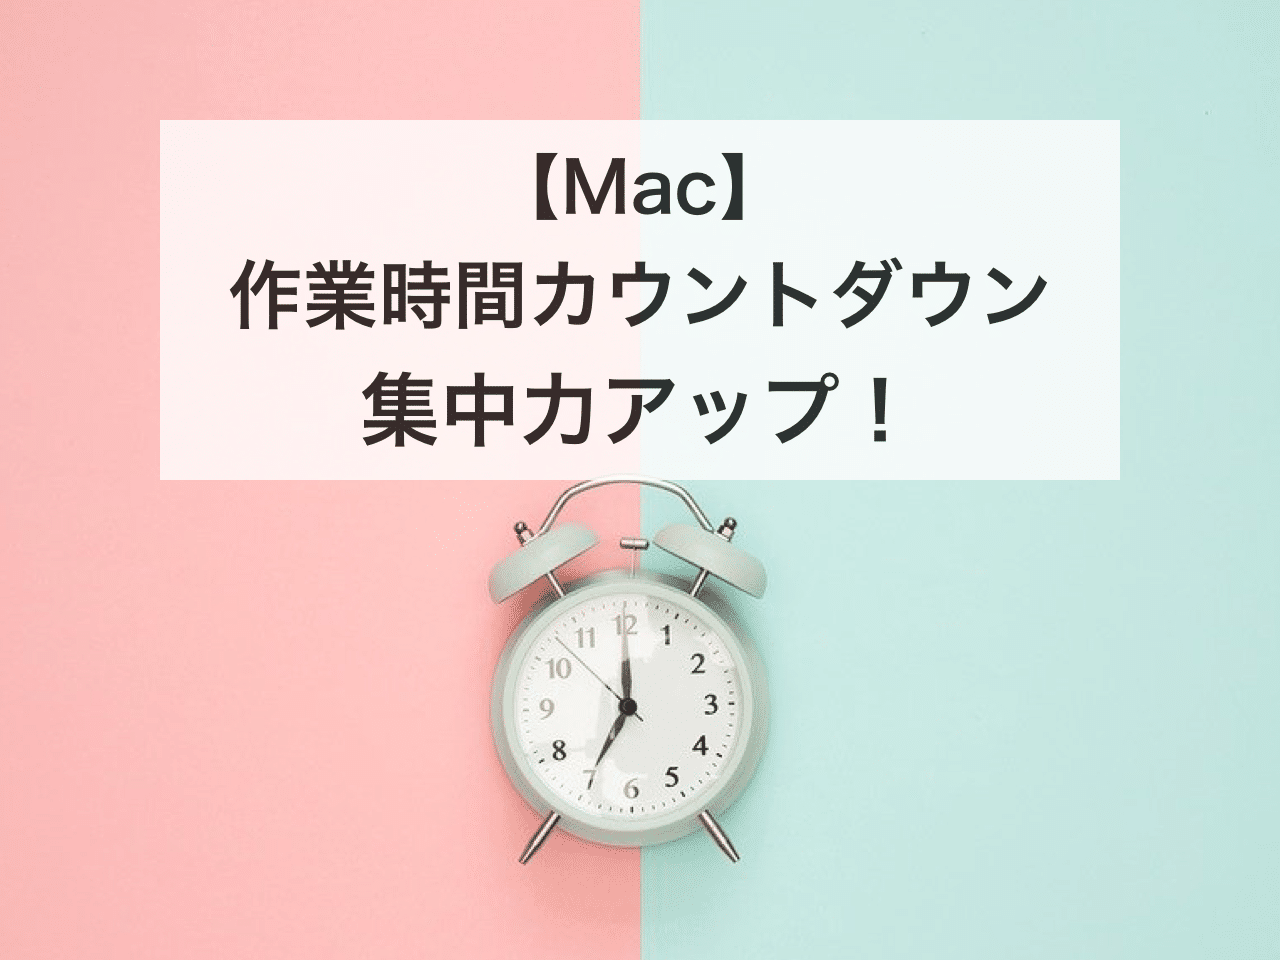 minimal traveler, eyecatch, mac, smart countdown timer, app